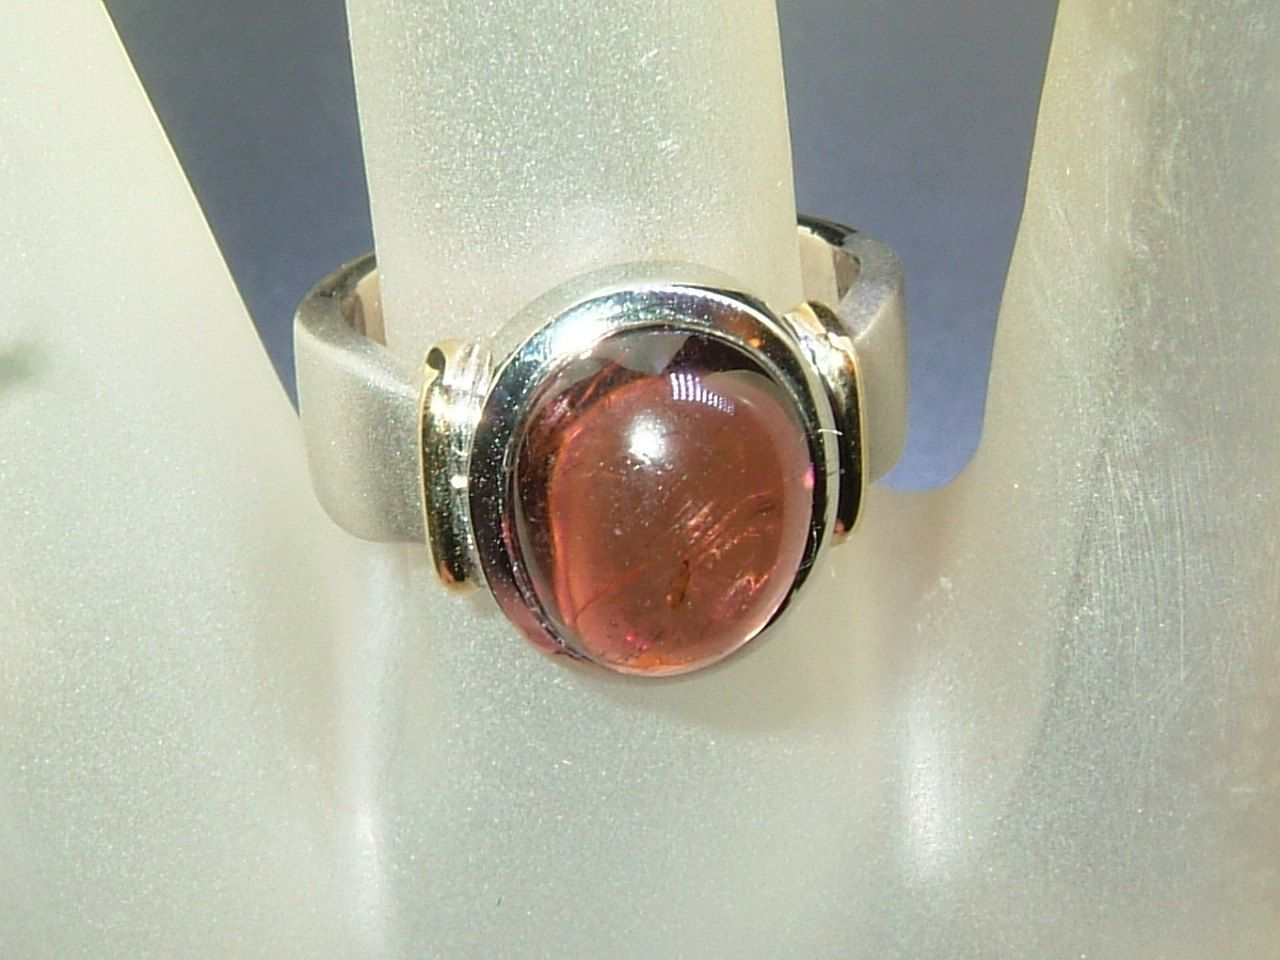 Bezel Cabachon 4ct Rubellite Solitaire Ring Sterling Silver 18kt by Gemsbygigialonia on Etsy